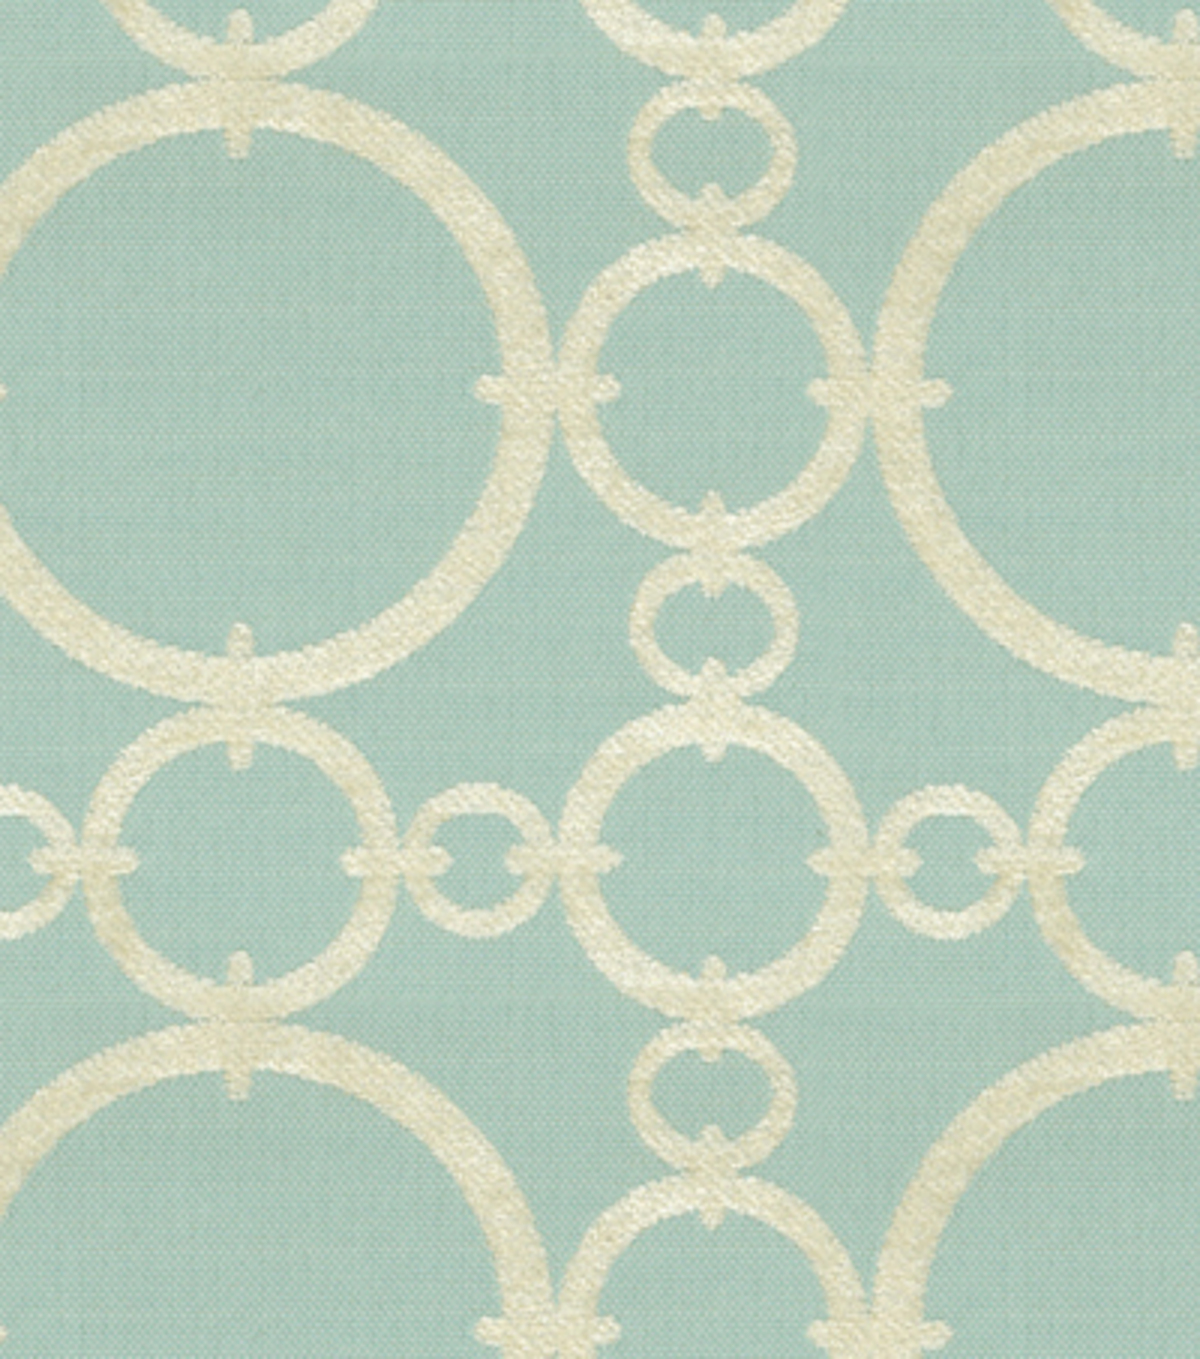 Home Decor 8\u0022x8\u0022 Fabric Swatch-Upholstery Fabric-Waverly Connected/Aquamarine